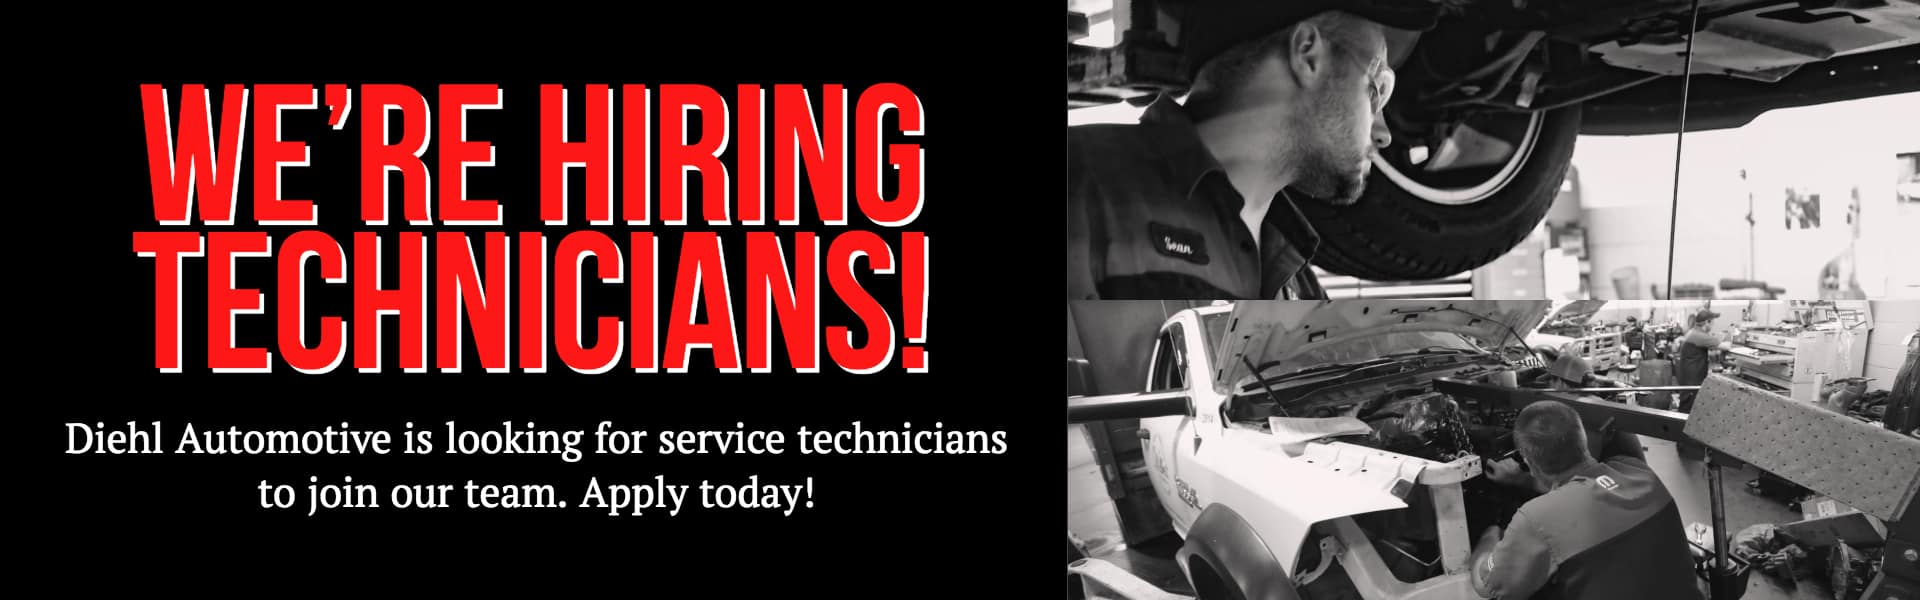 service technician now hiring diehl automotive service tech butler grove city robinson salem ohio jobs pennsylvania jobs now hiring